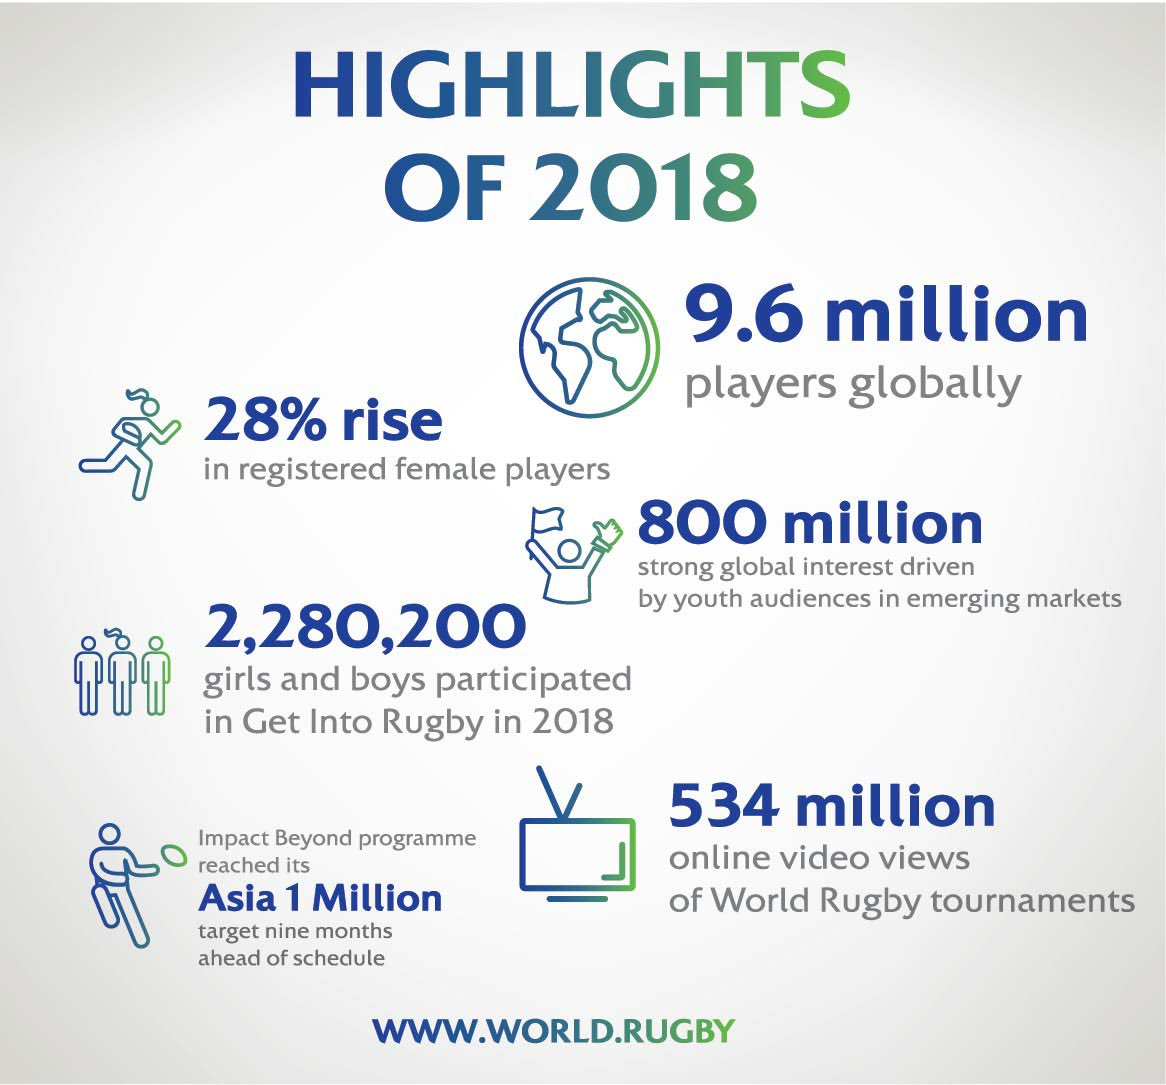 test Twitter Media - Special year for global game with 800 million-strong global interest driven by youth audiences in emerging markets #GetIntoRugby #RugbyBuildsCharacter   Read more: https://t.co/VDvn60b9KC https://t.co/XMPbPamhSB